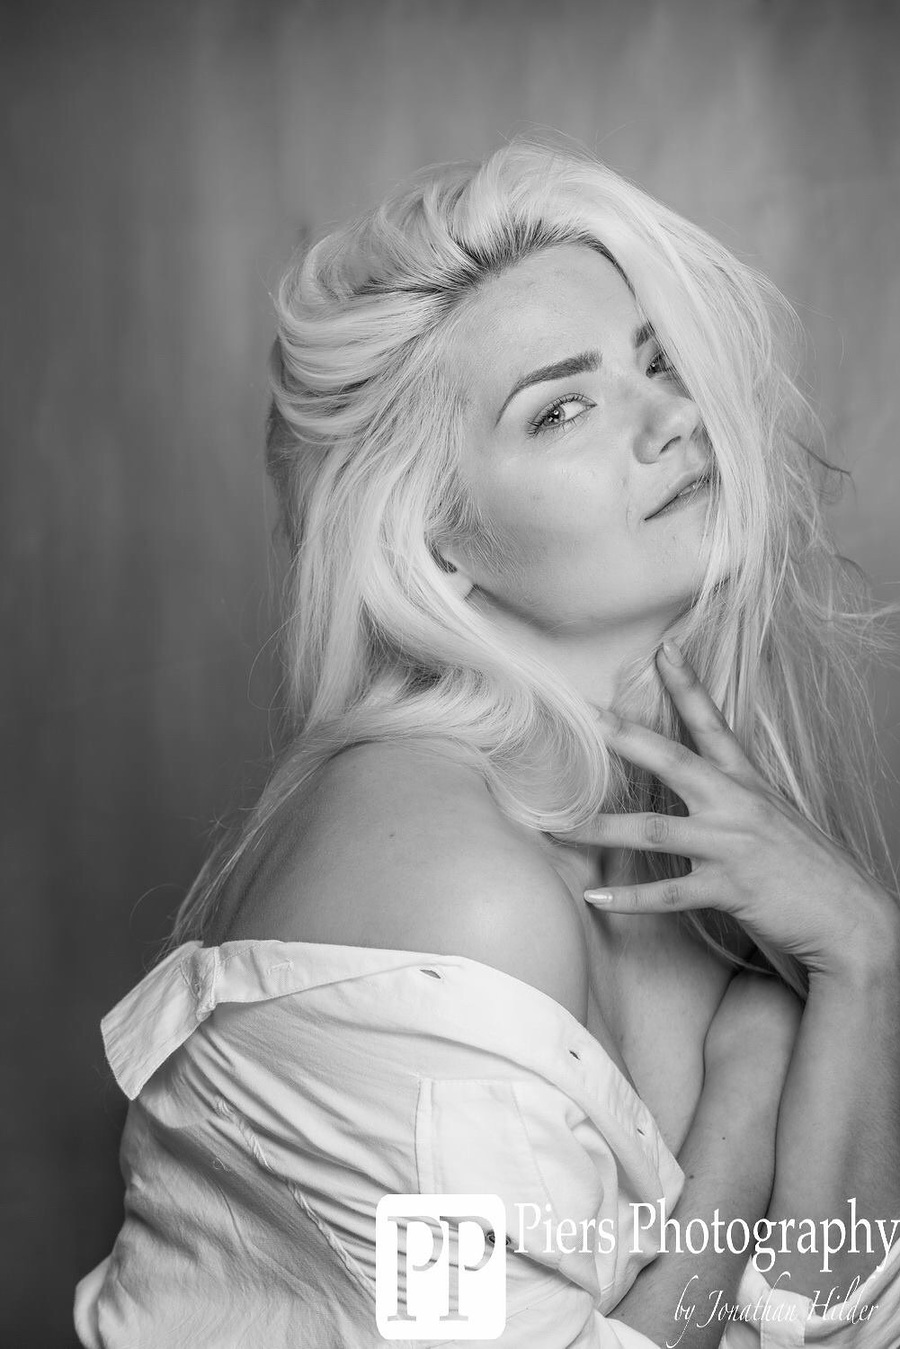 Photography by JonathanH, Model Aly Sky / Uploaded 28th March 2016 @ 03:36 PM